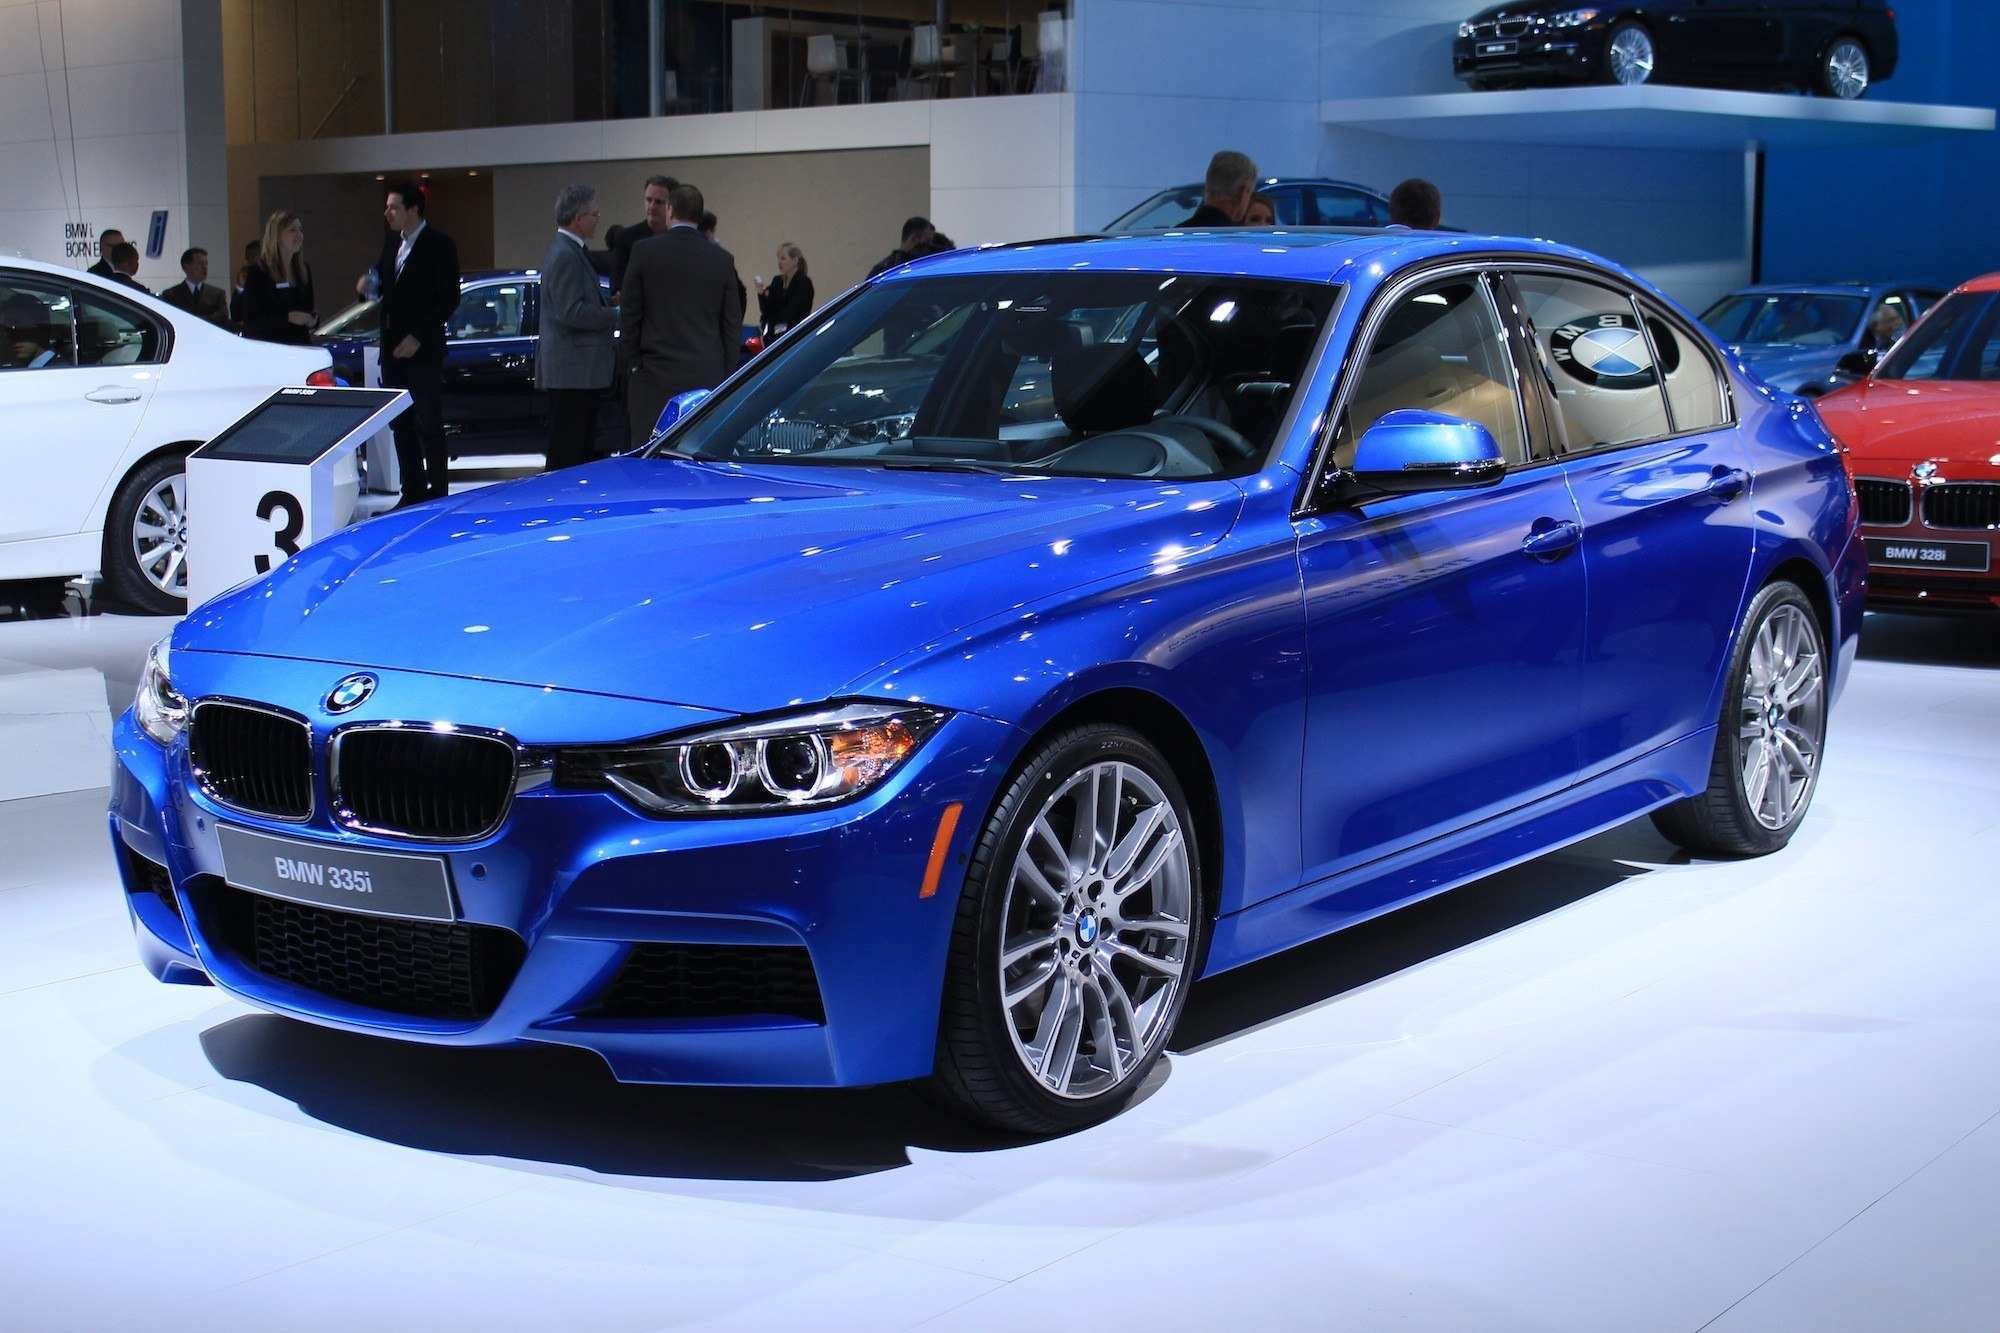 37 Best 2019 BMW 335i Price And Release Date